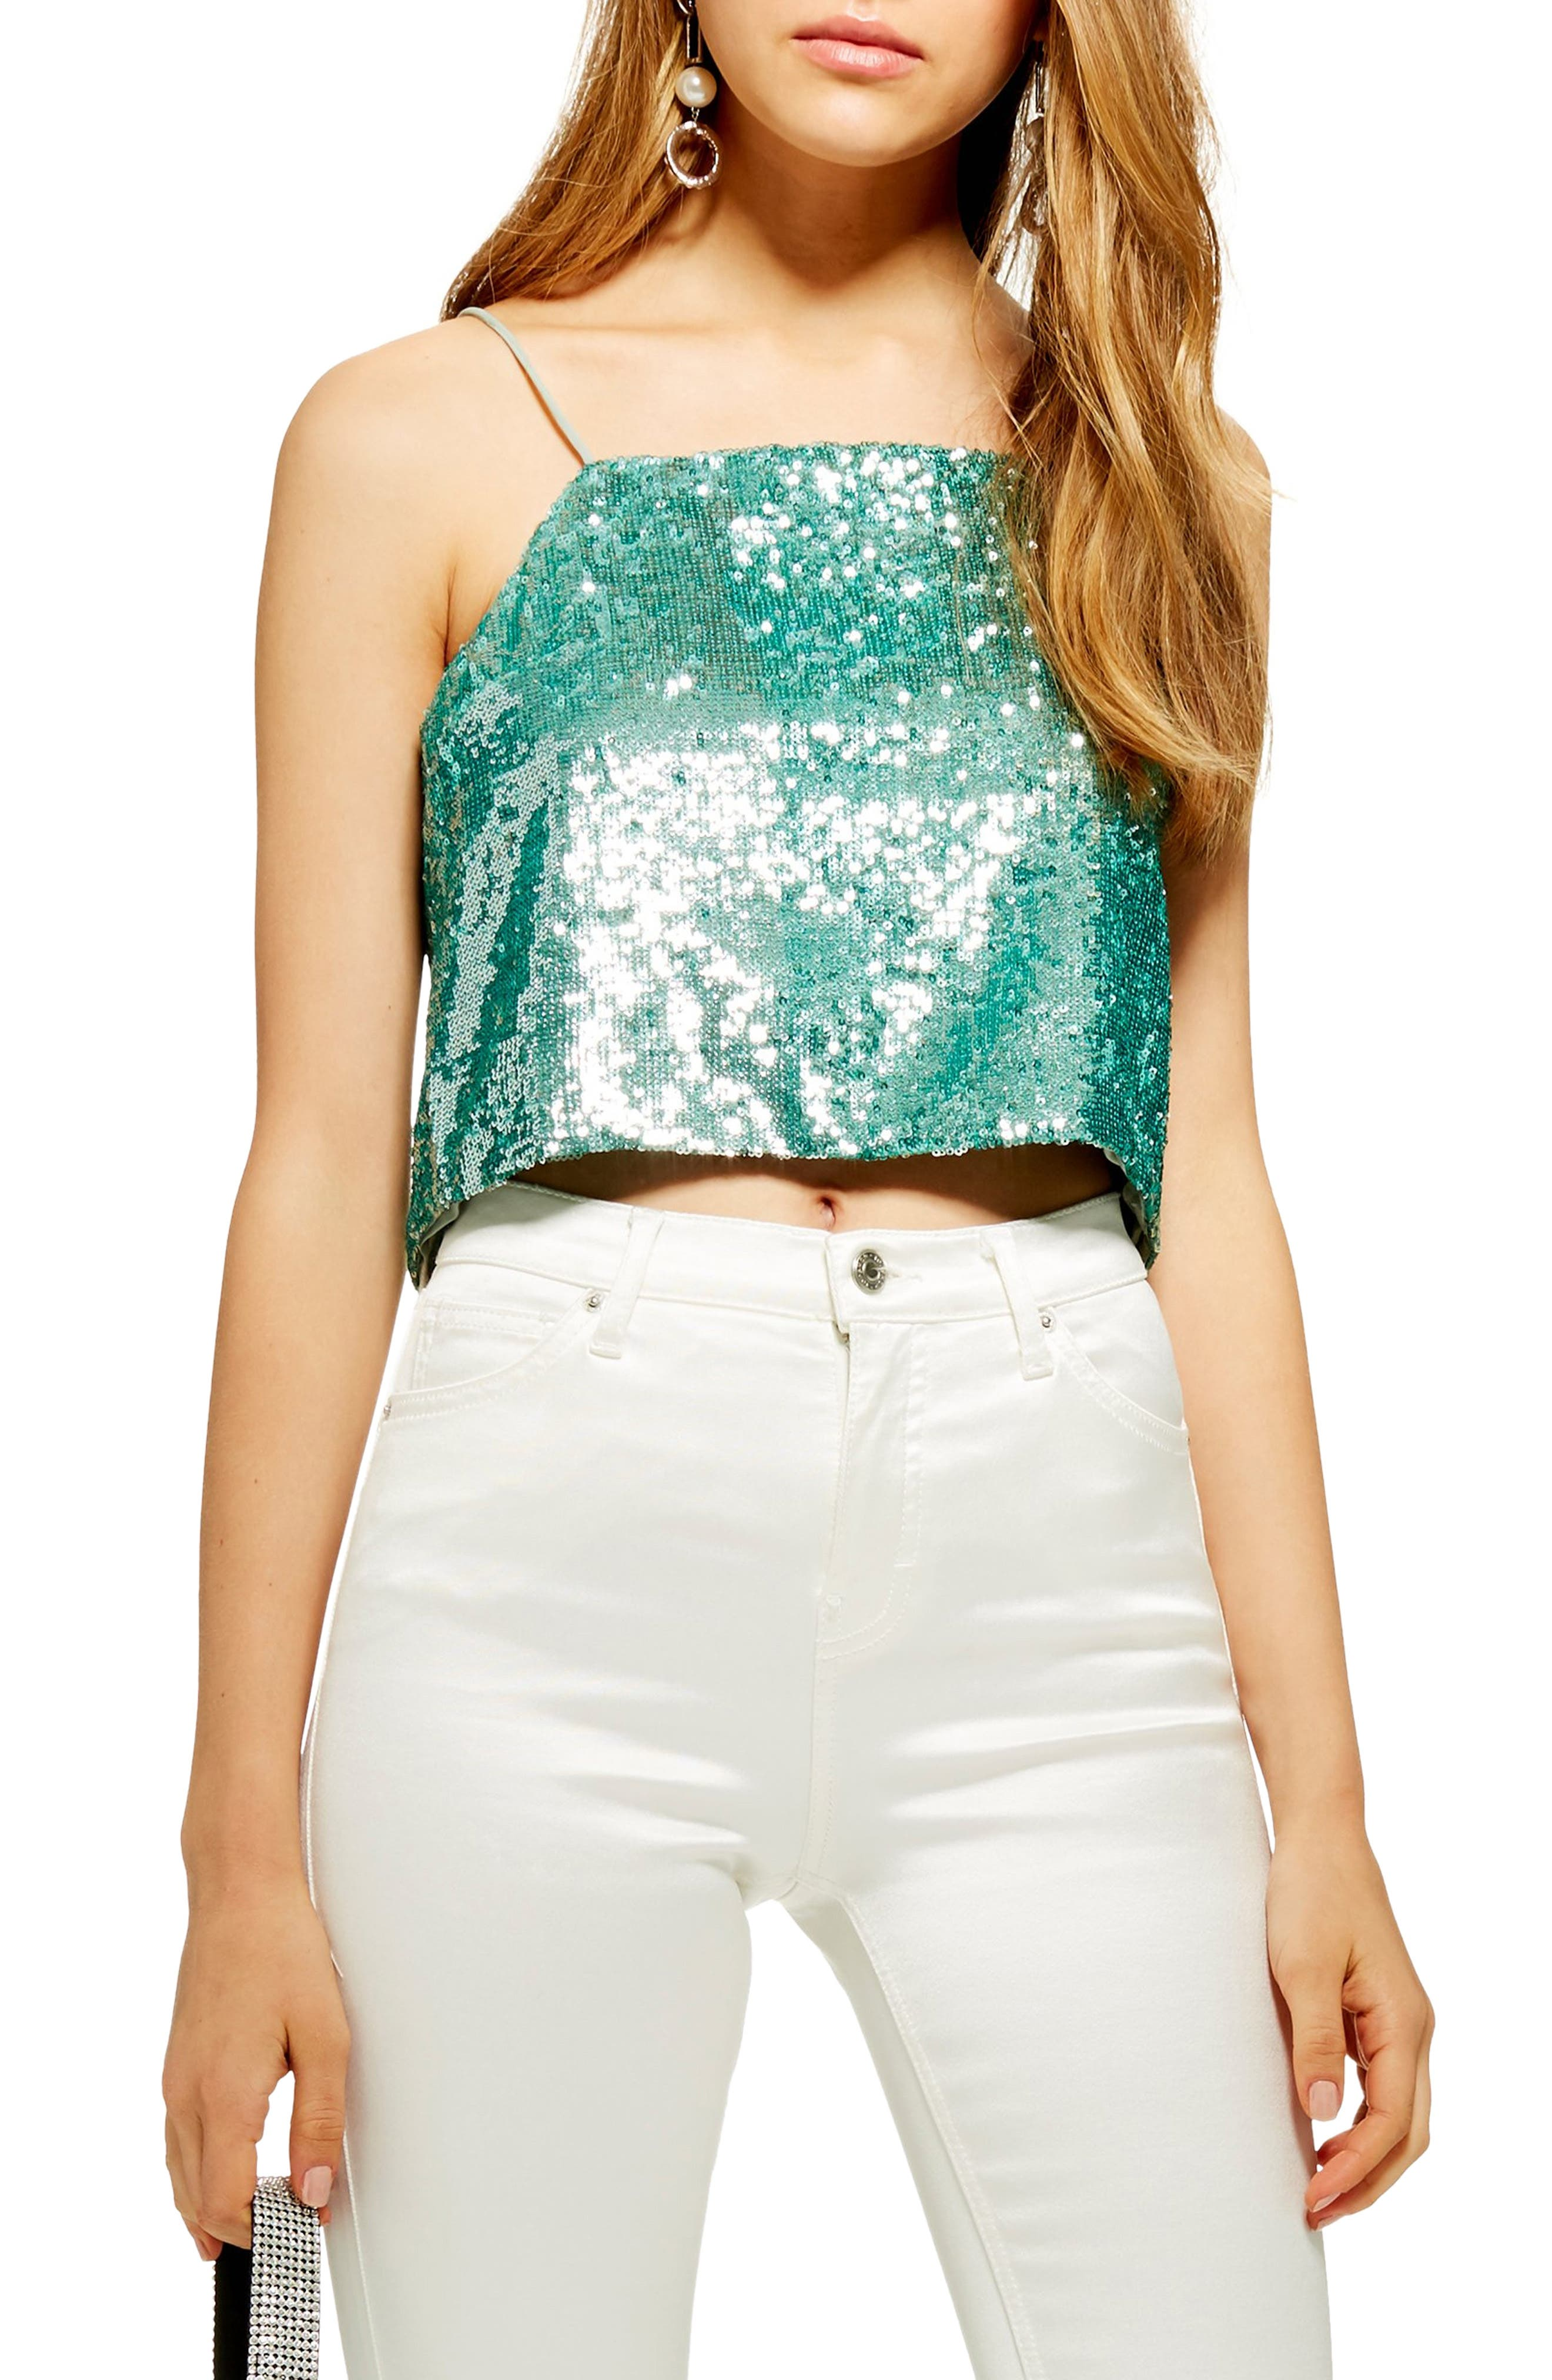 Topshop Sequin Crop Camisole, US (fits like 0) - Green